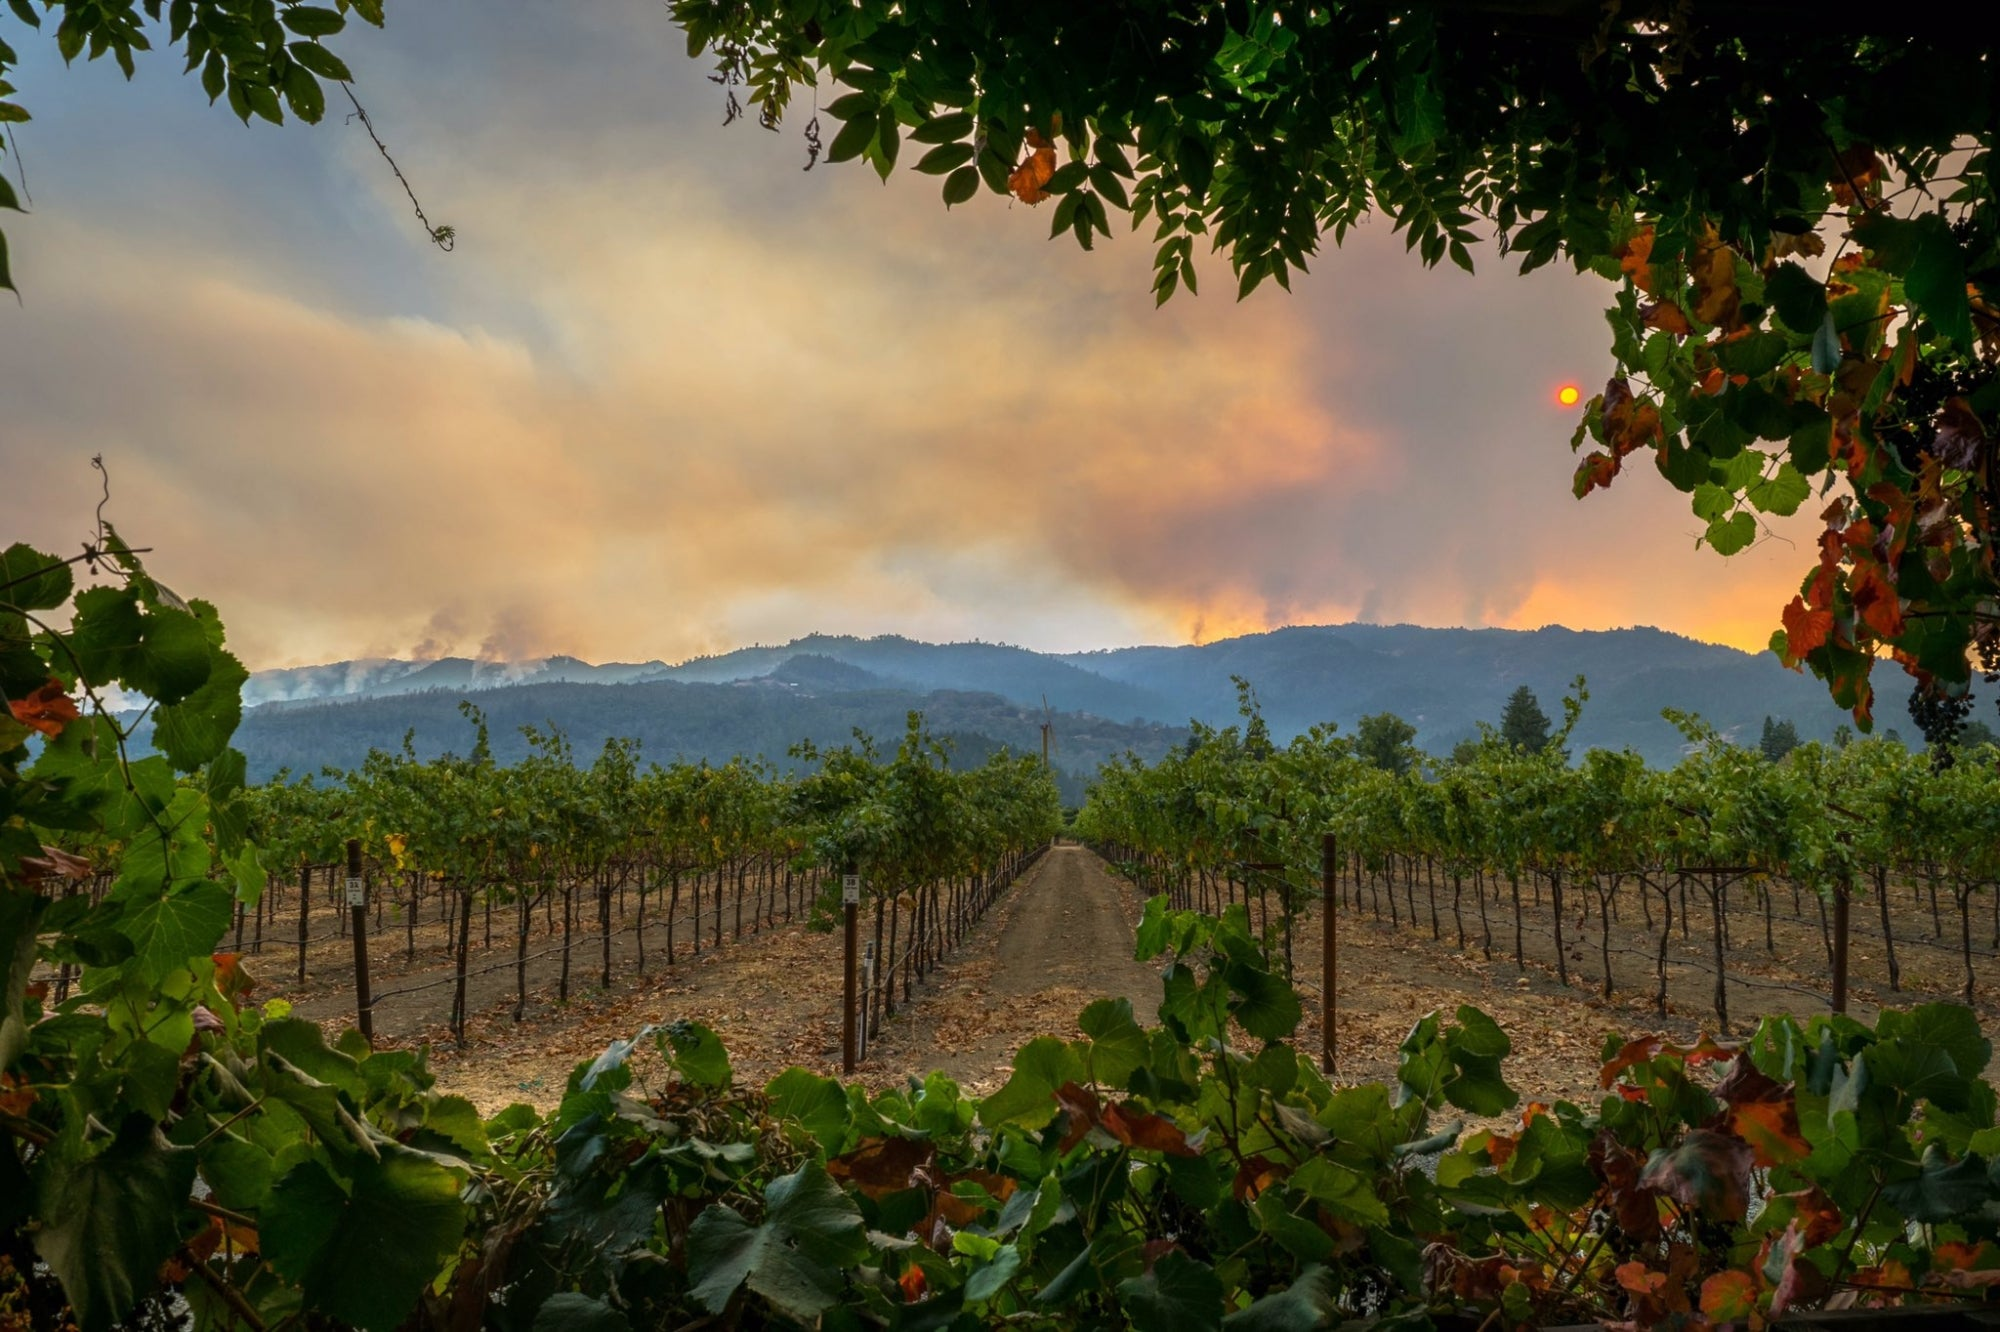 Photo of fire behind hills and vineyard